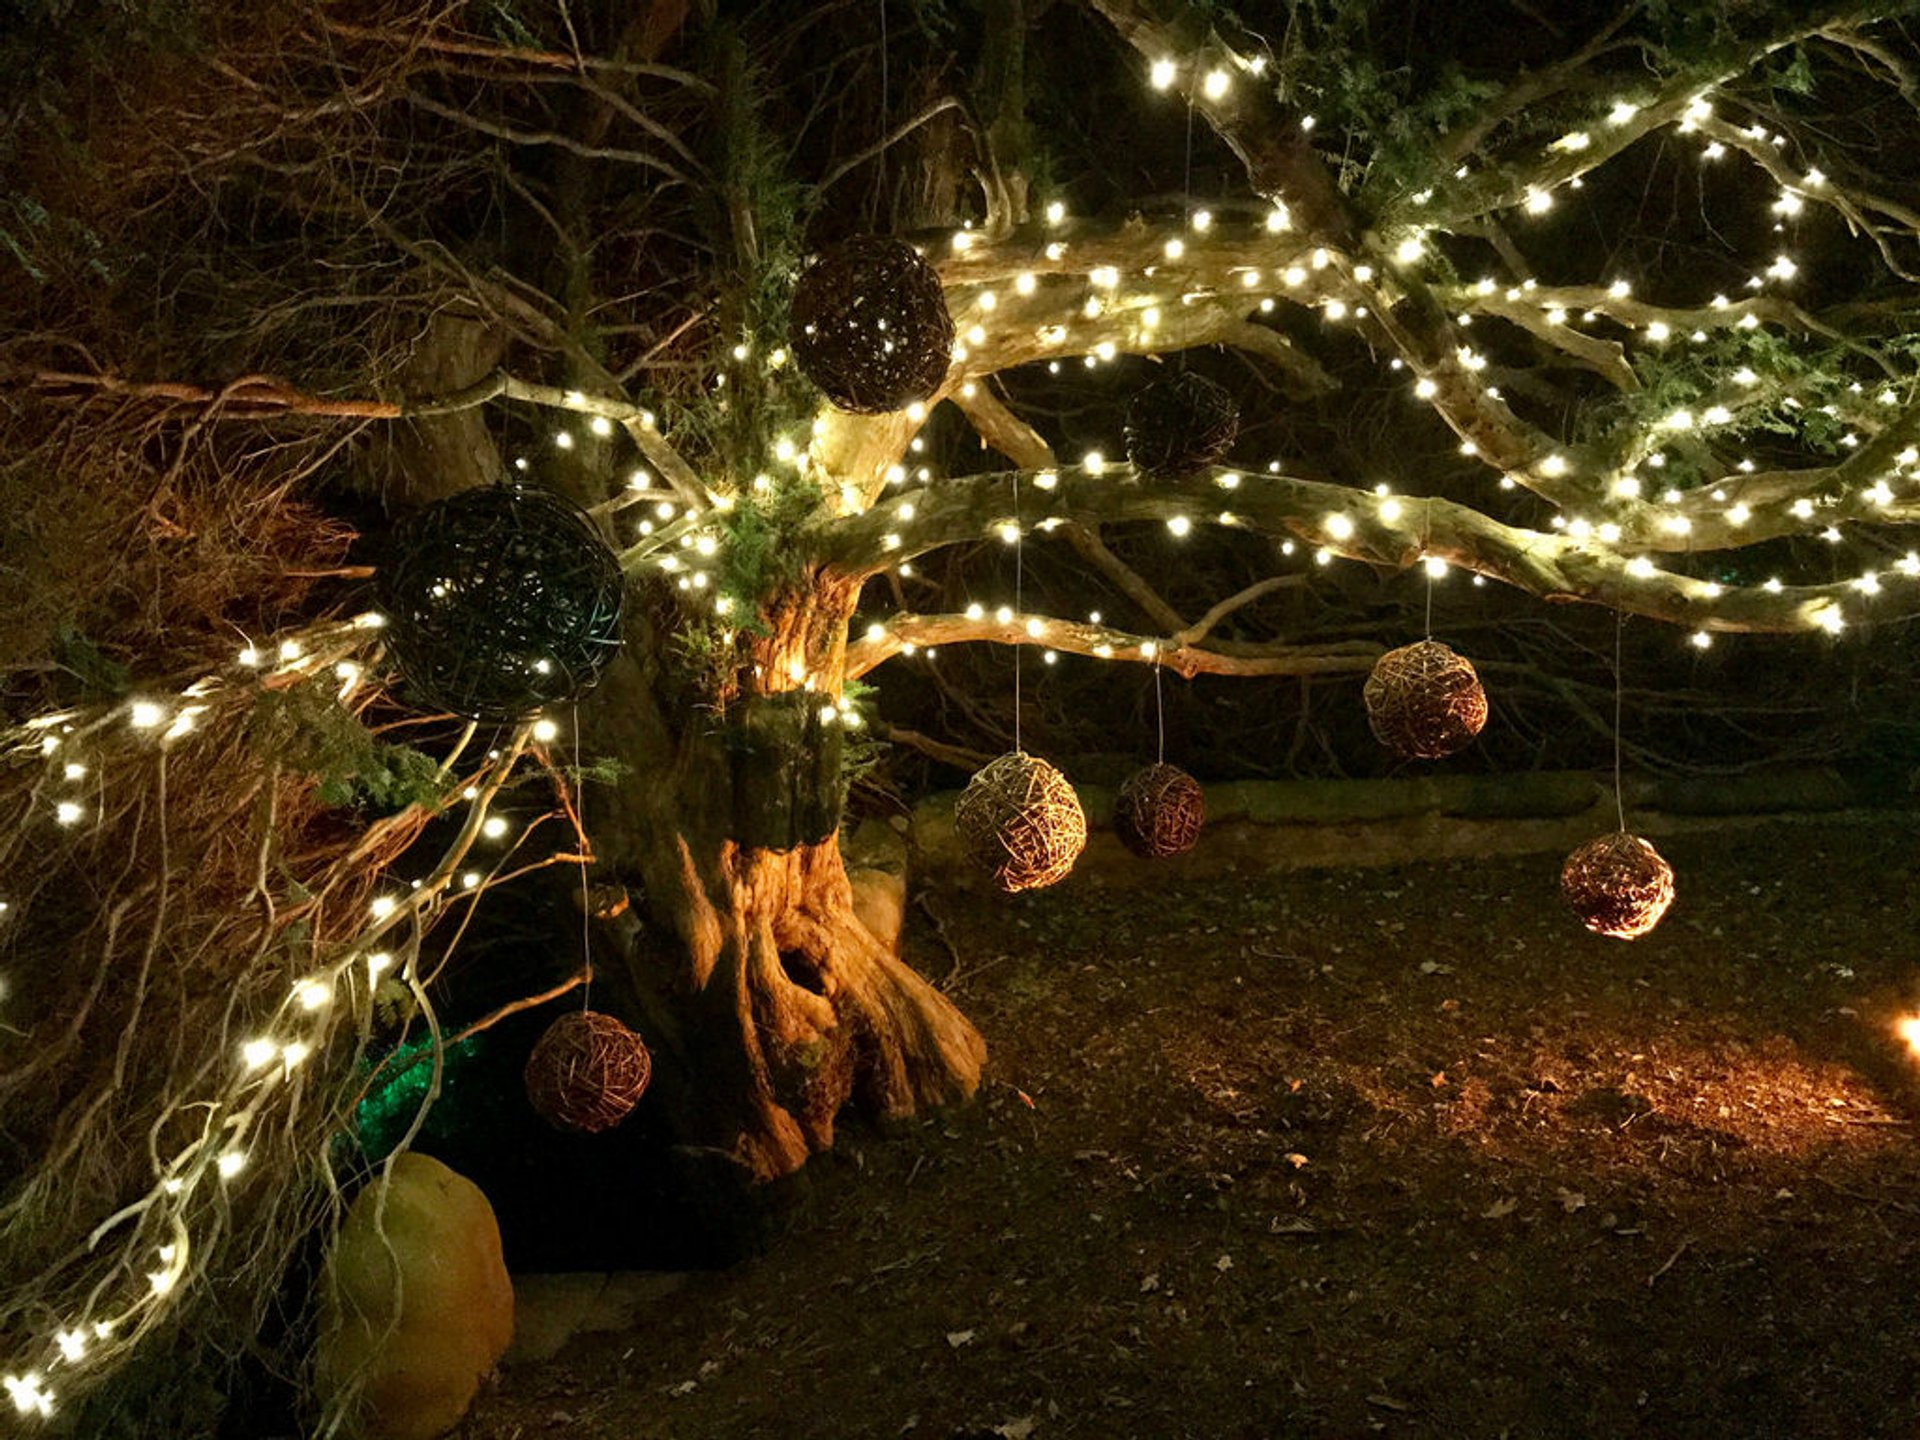 Best time to see Christmas at Powis Castle in Wales 2019